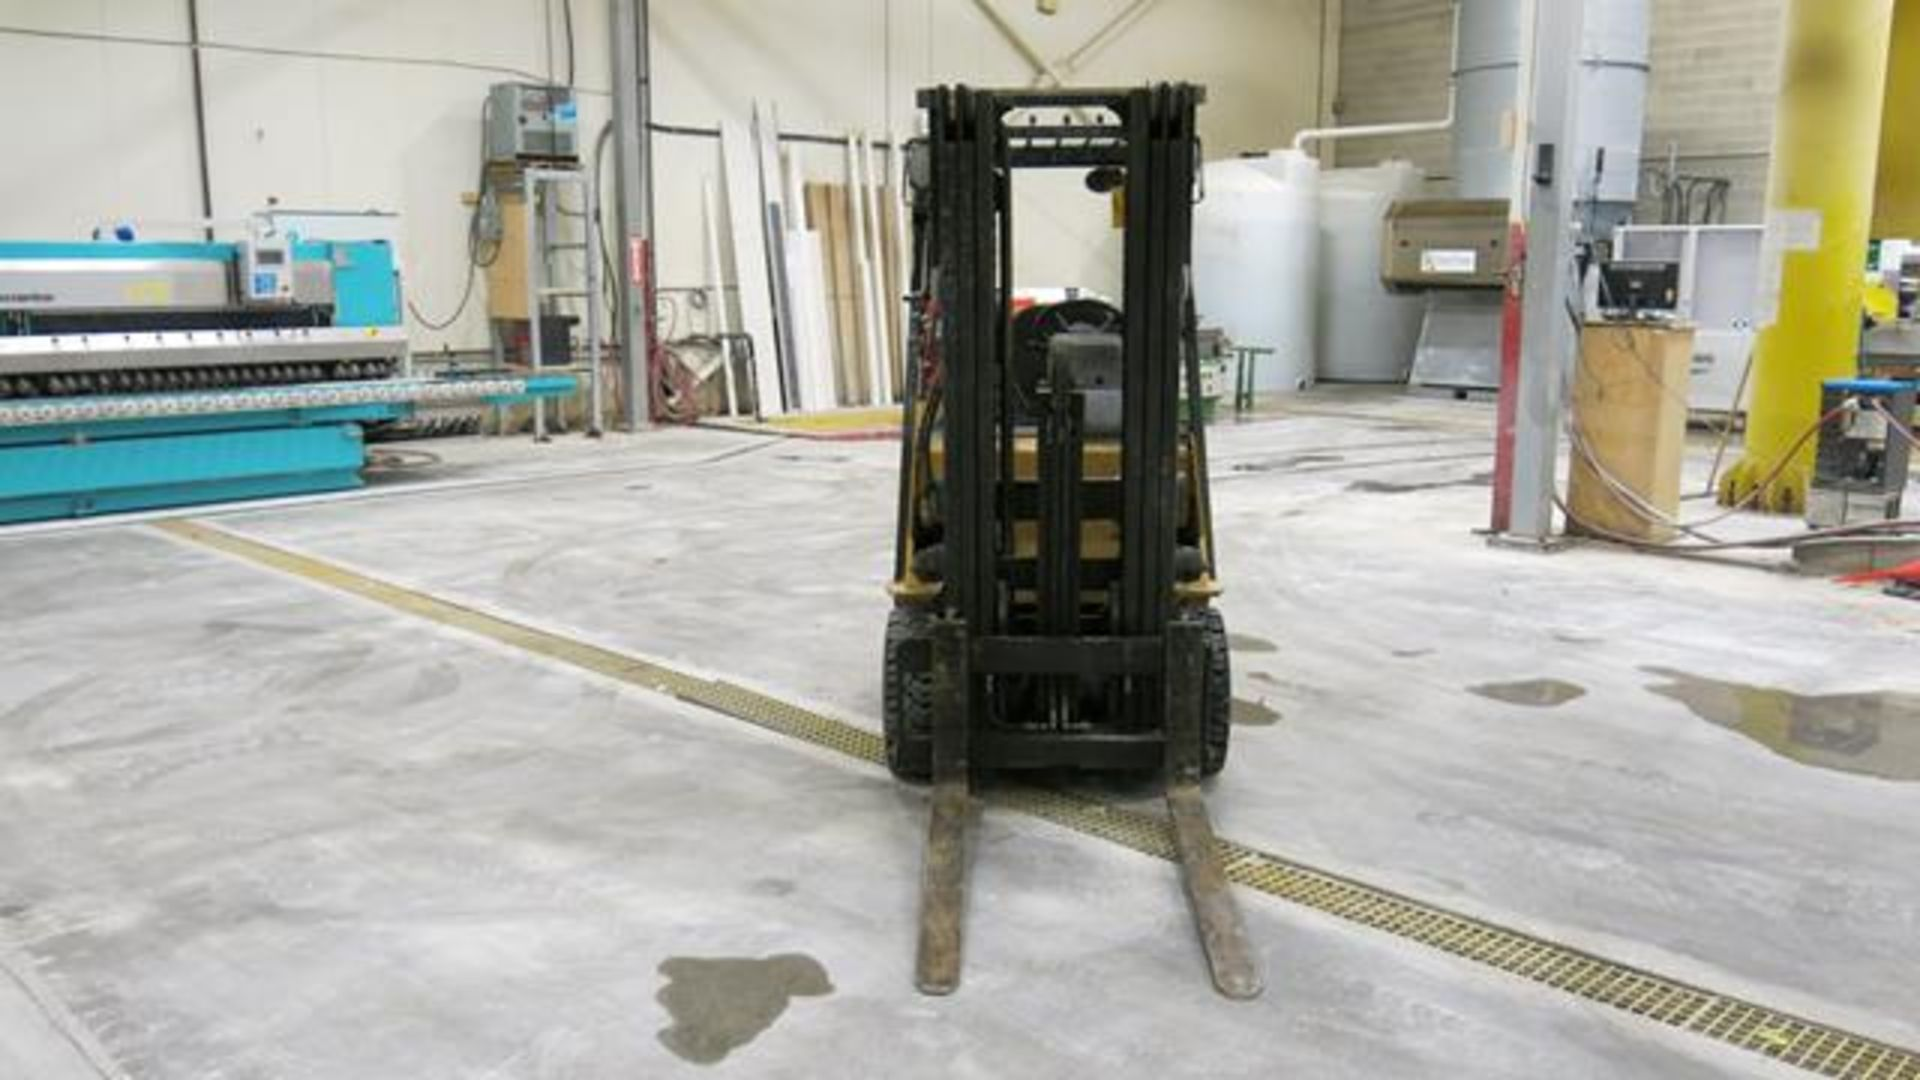 """Lot 910 - CATERPILLAR, 2C5000, 4,750 LBS., 3 STAGE LPG FORKLIFT WITH SIDESHIFT, 187"""" MAXIMUM LIFT"""